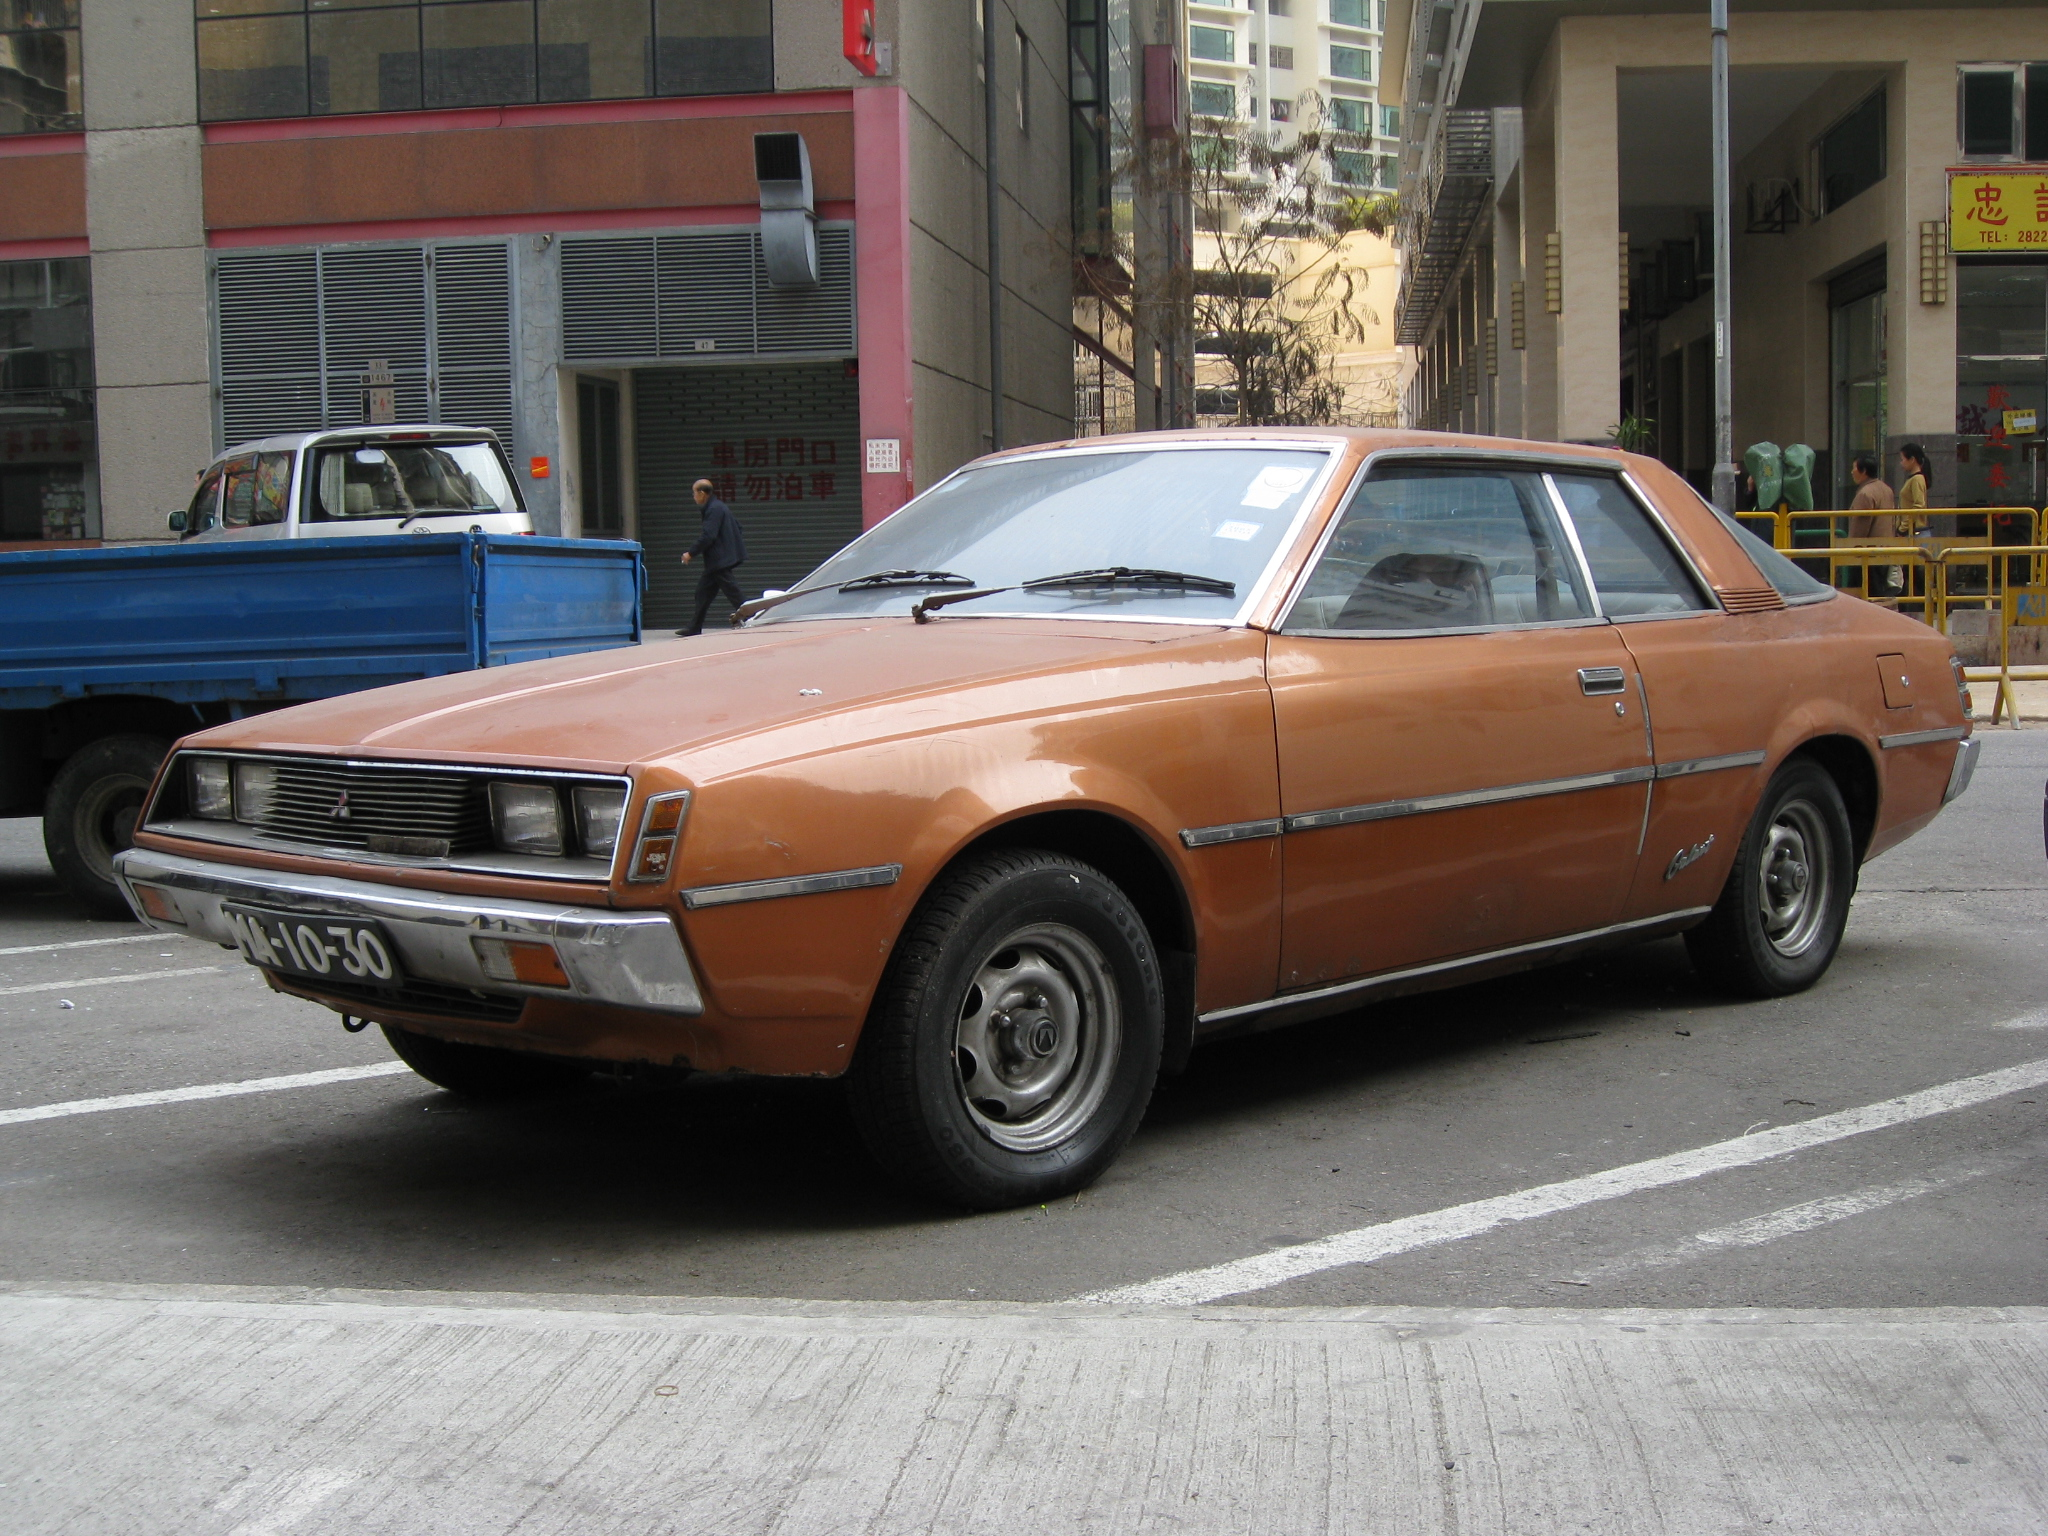 Mitsubishi Galant Lambda | Flickr - Photo Sharing!